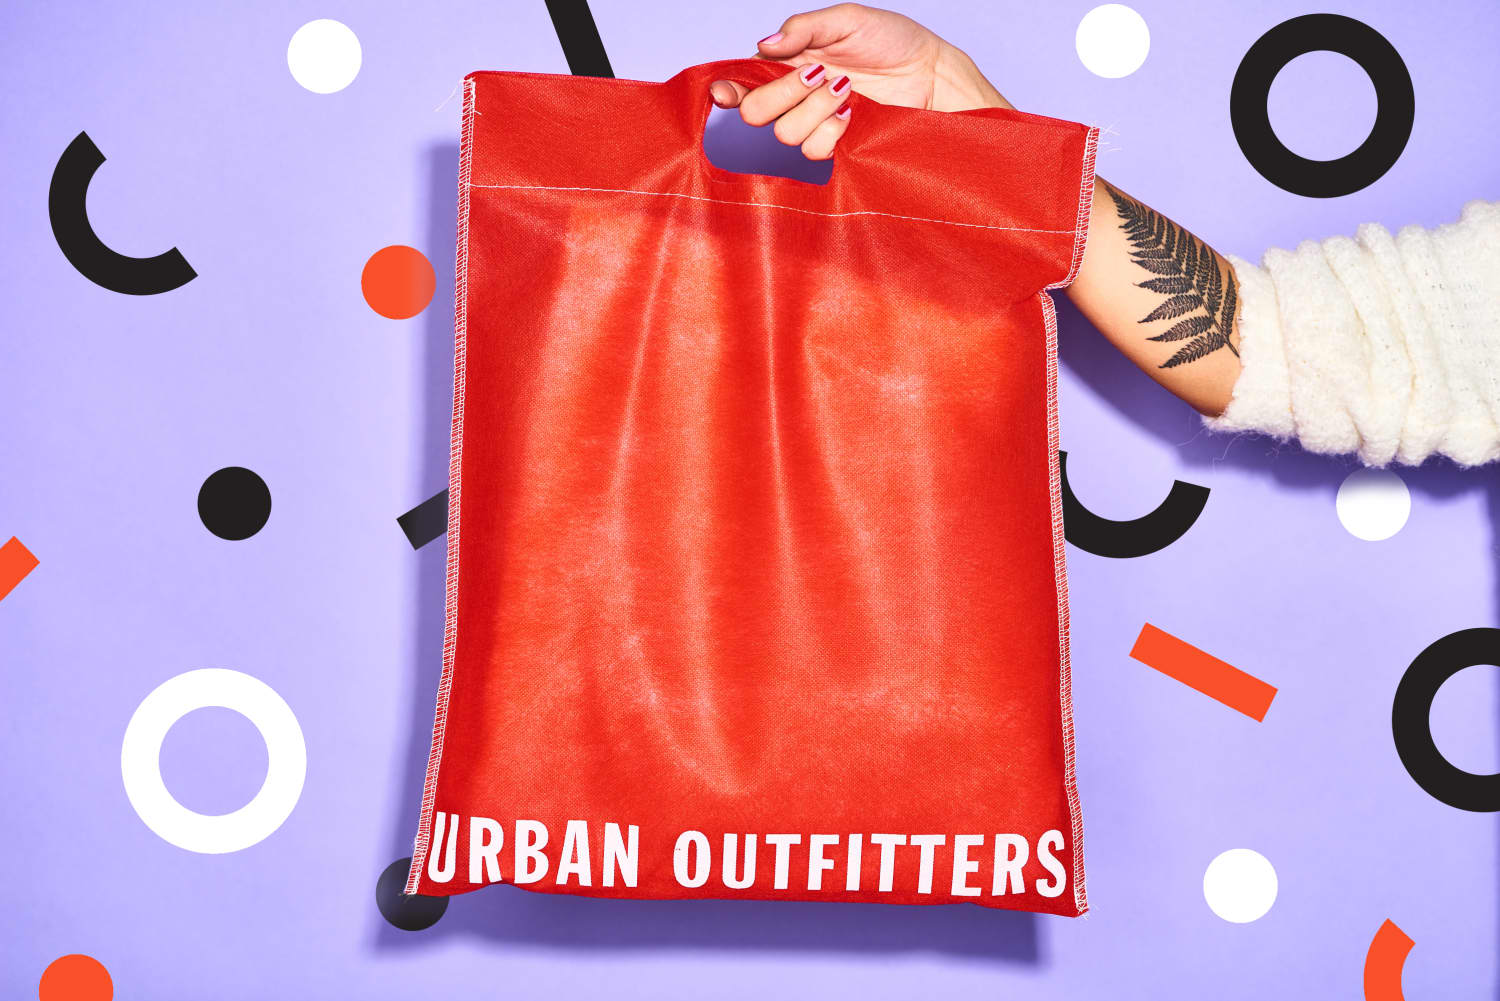 The 12 Weirdest Things You Can Buy at Urban Outfitters, Including $500 Giant French Fries